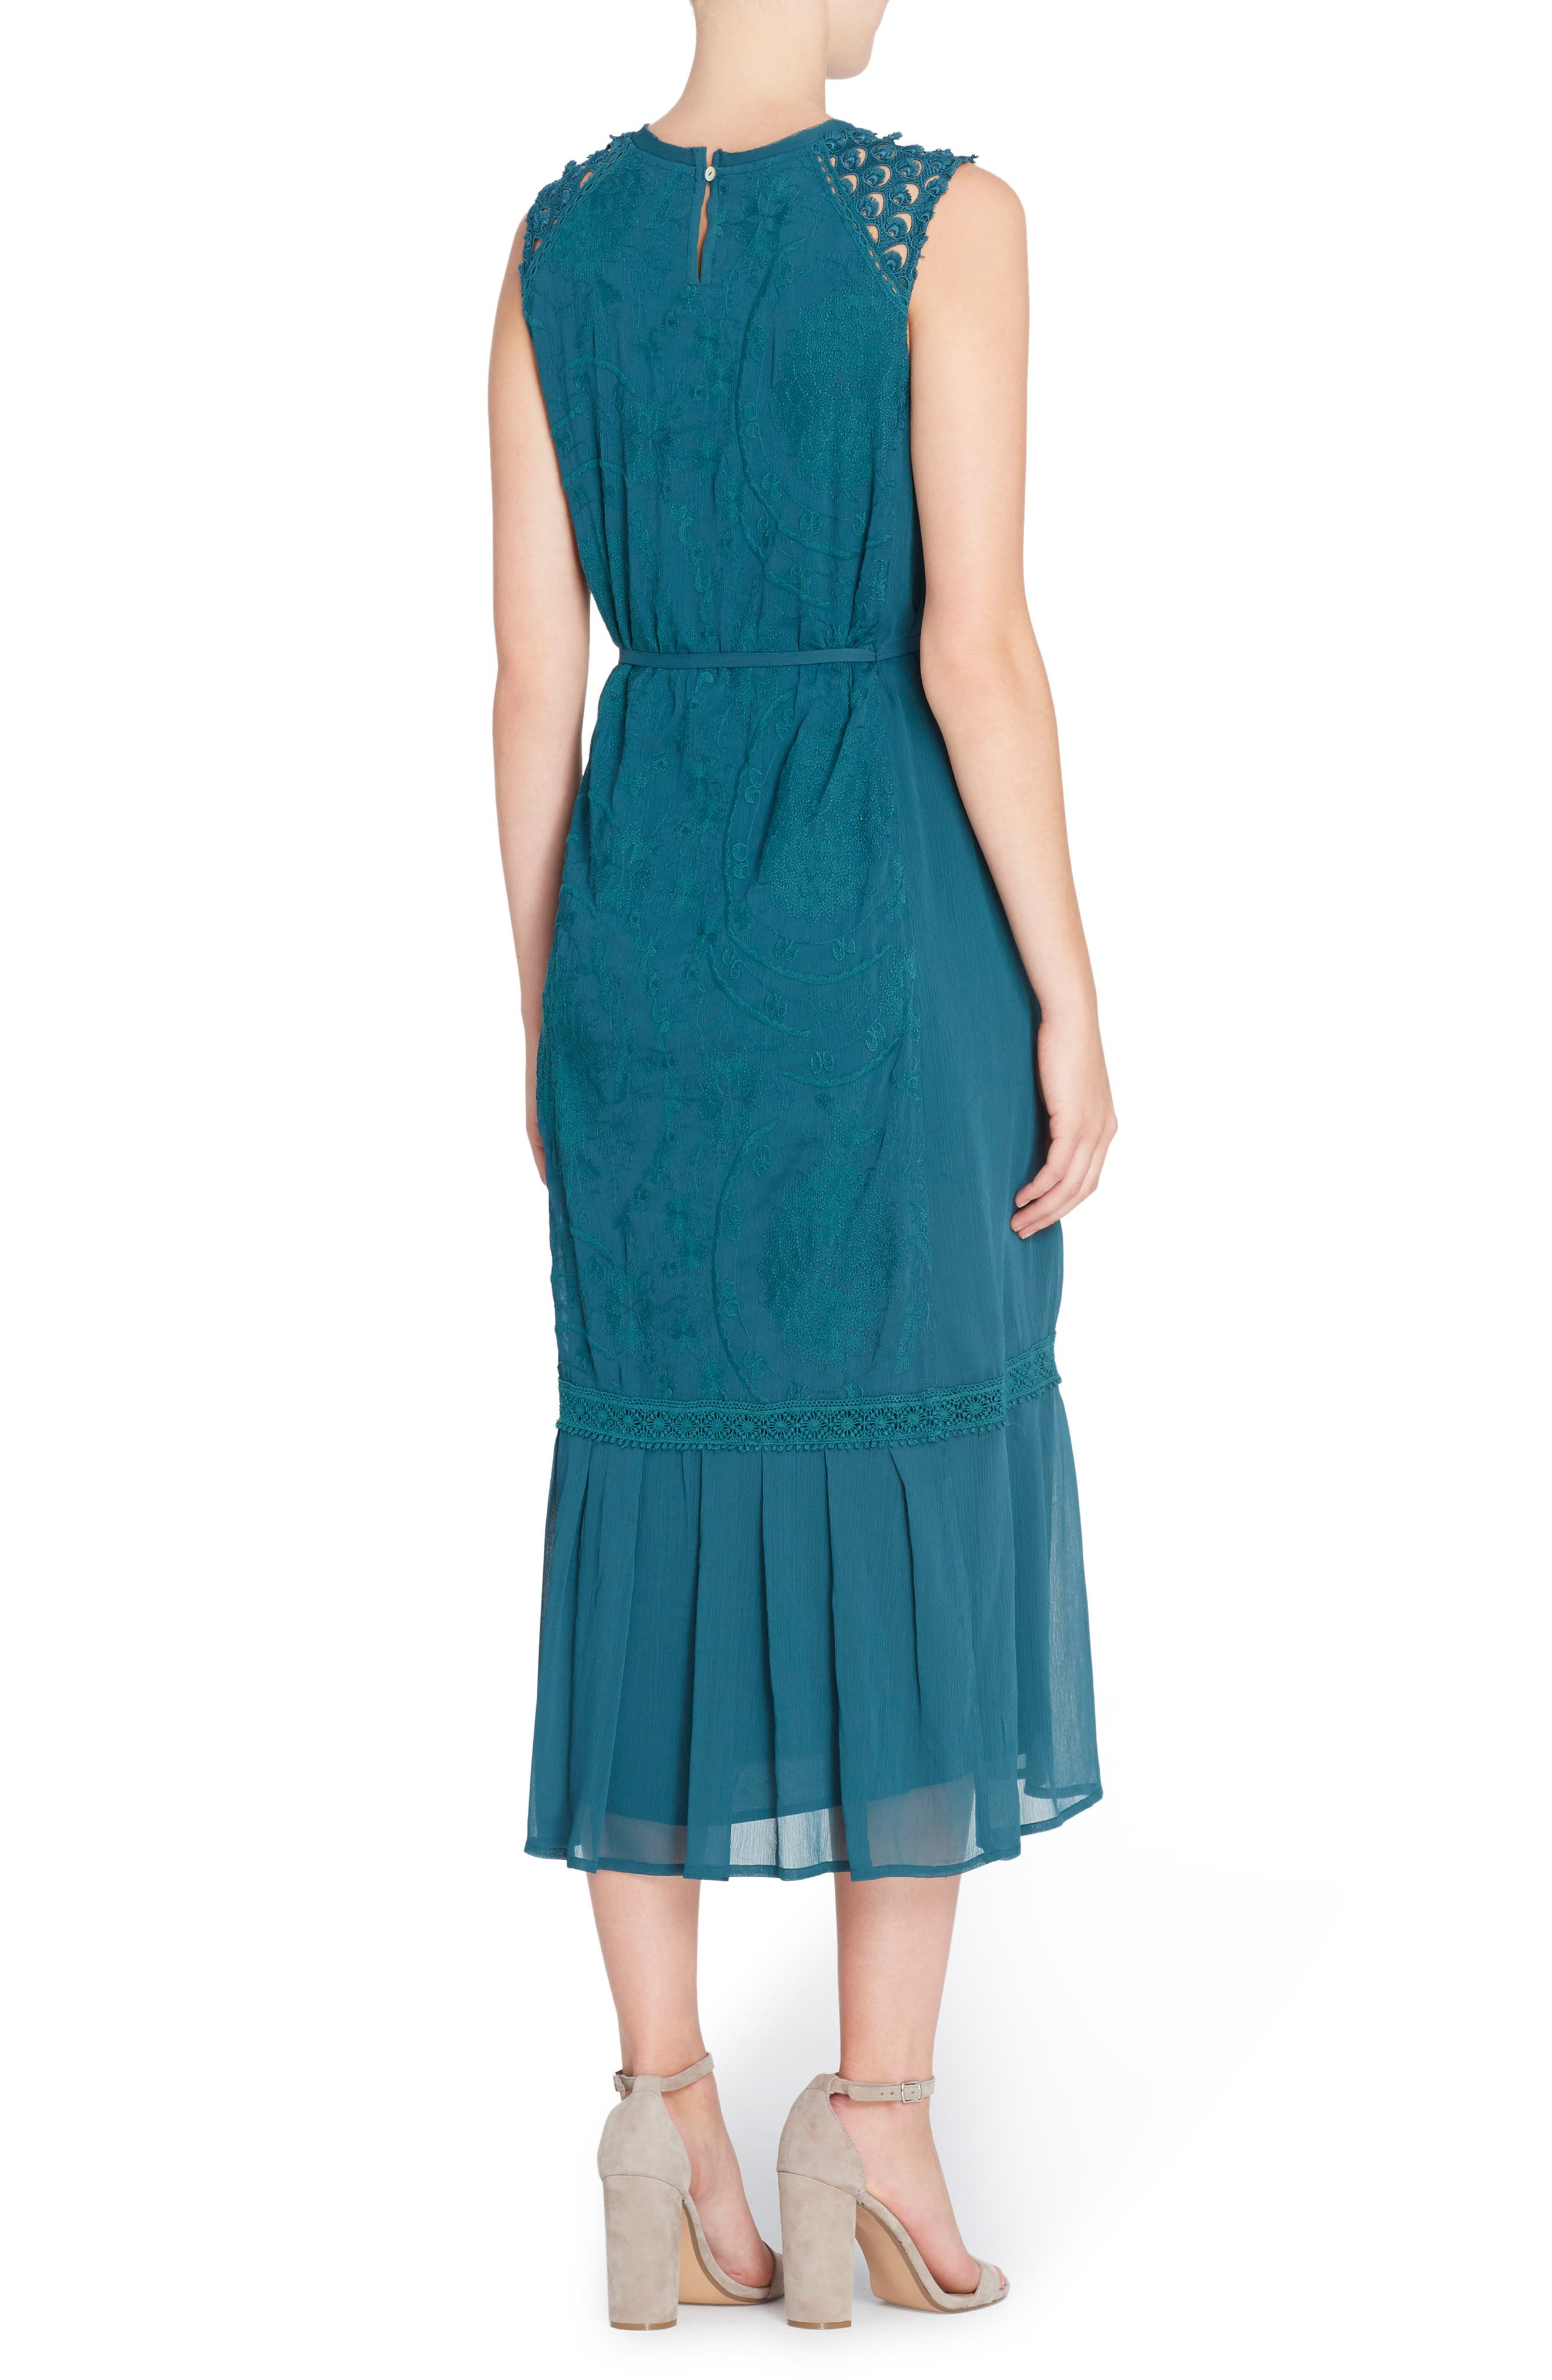 Ellen Embroidered Midi Dress,                             Alternate thumbnail 2, color,                             347